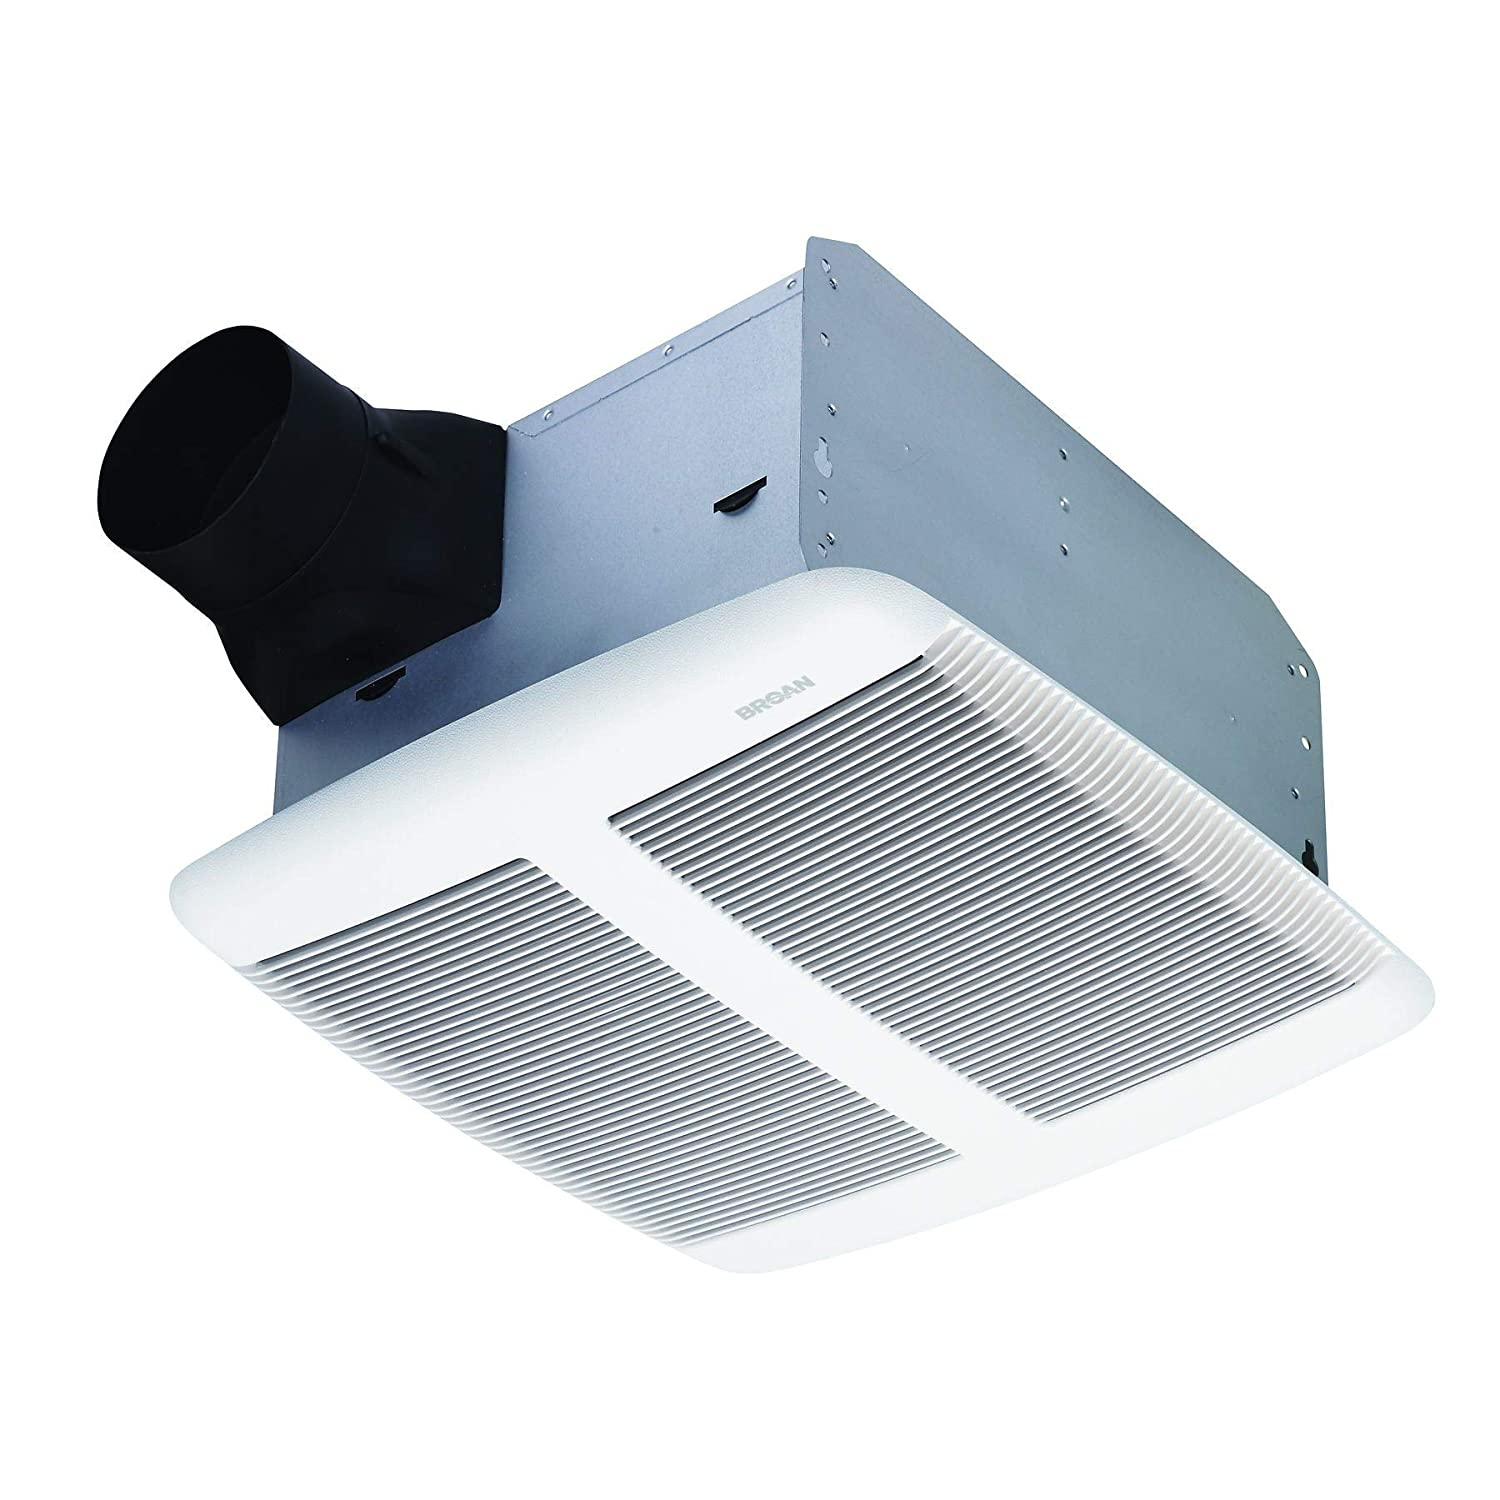 Broan SPK110 Sensonic Speaker Bathroom Fan